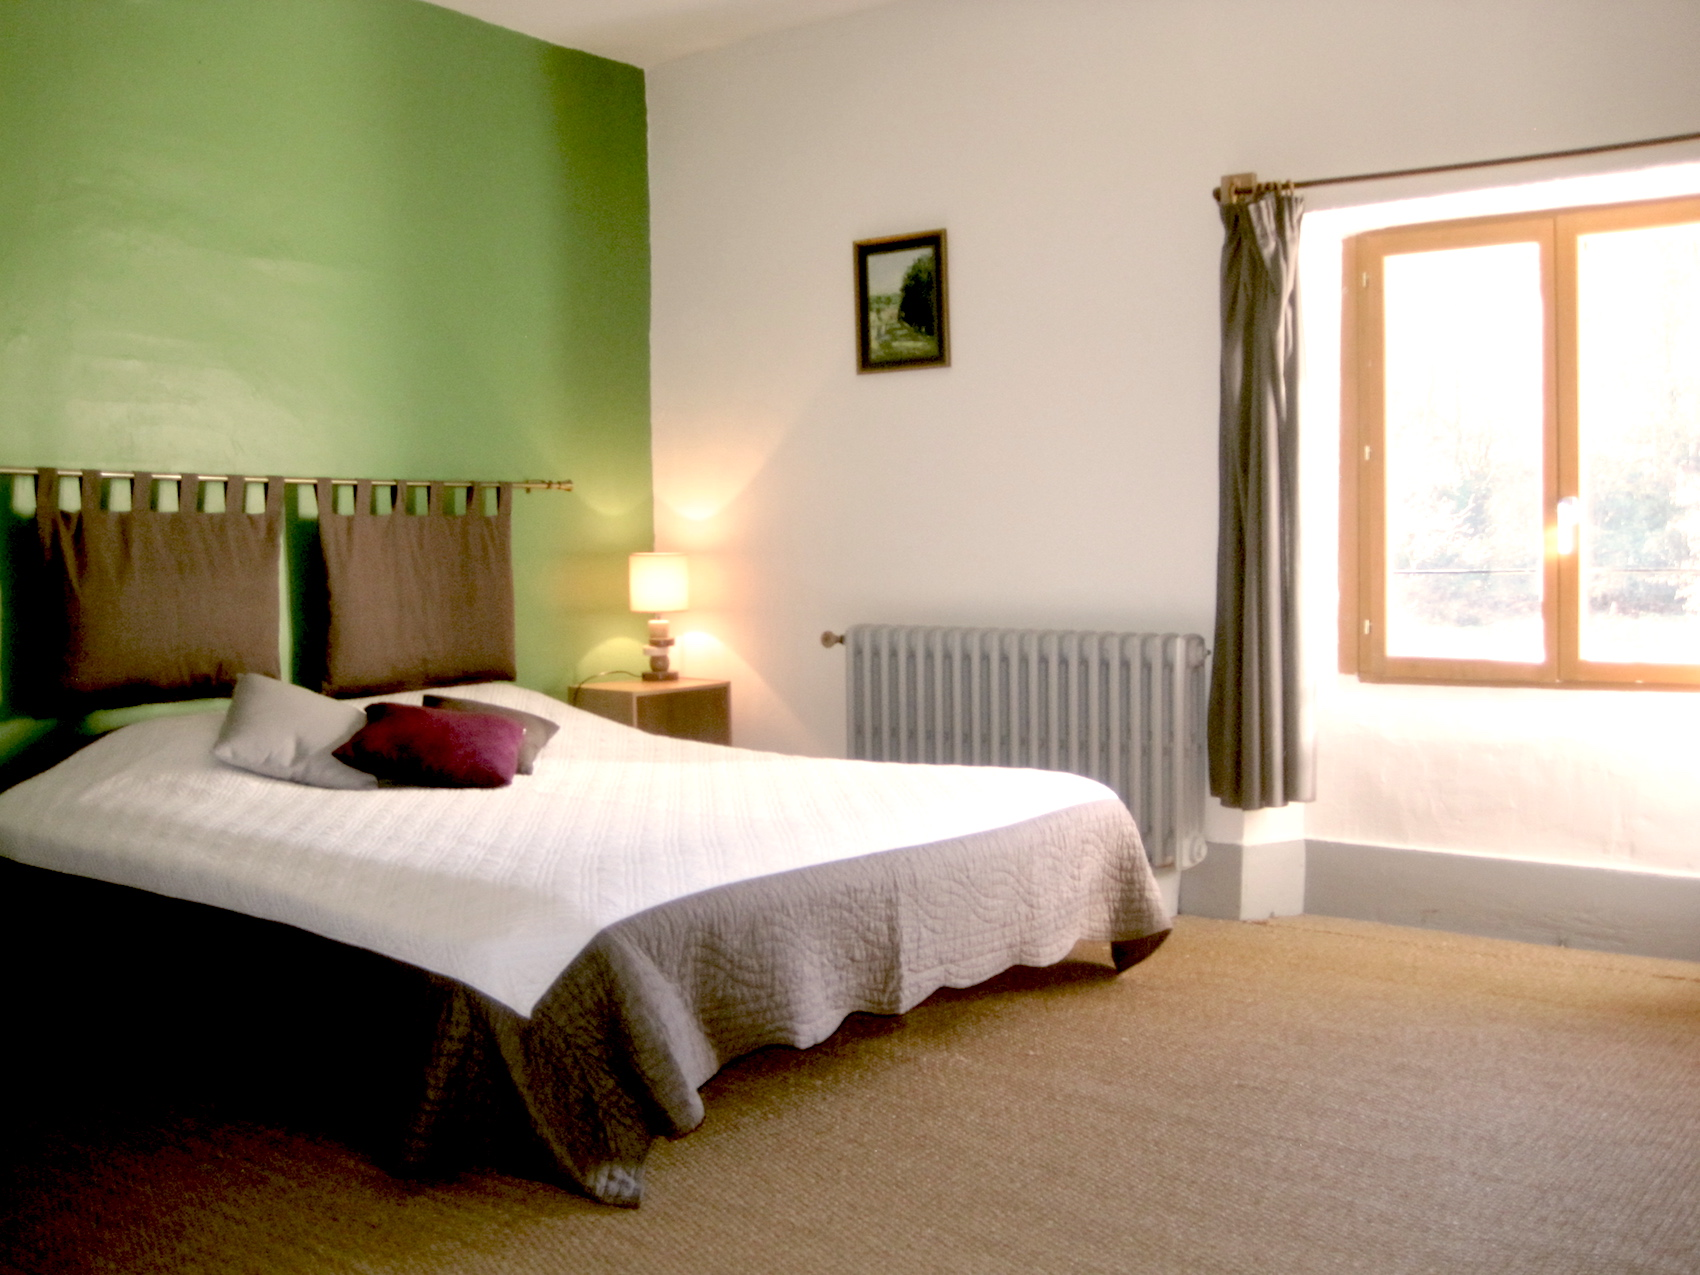 PACKAGE 2 - 2 persons   Shared room, 2 persons, en suite bathroom, large room with seating area and desk, river & garden views. Double or single beds.